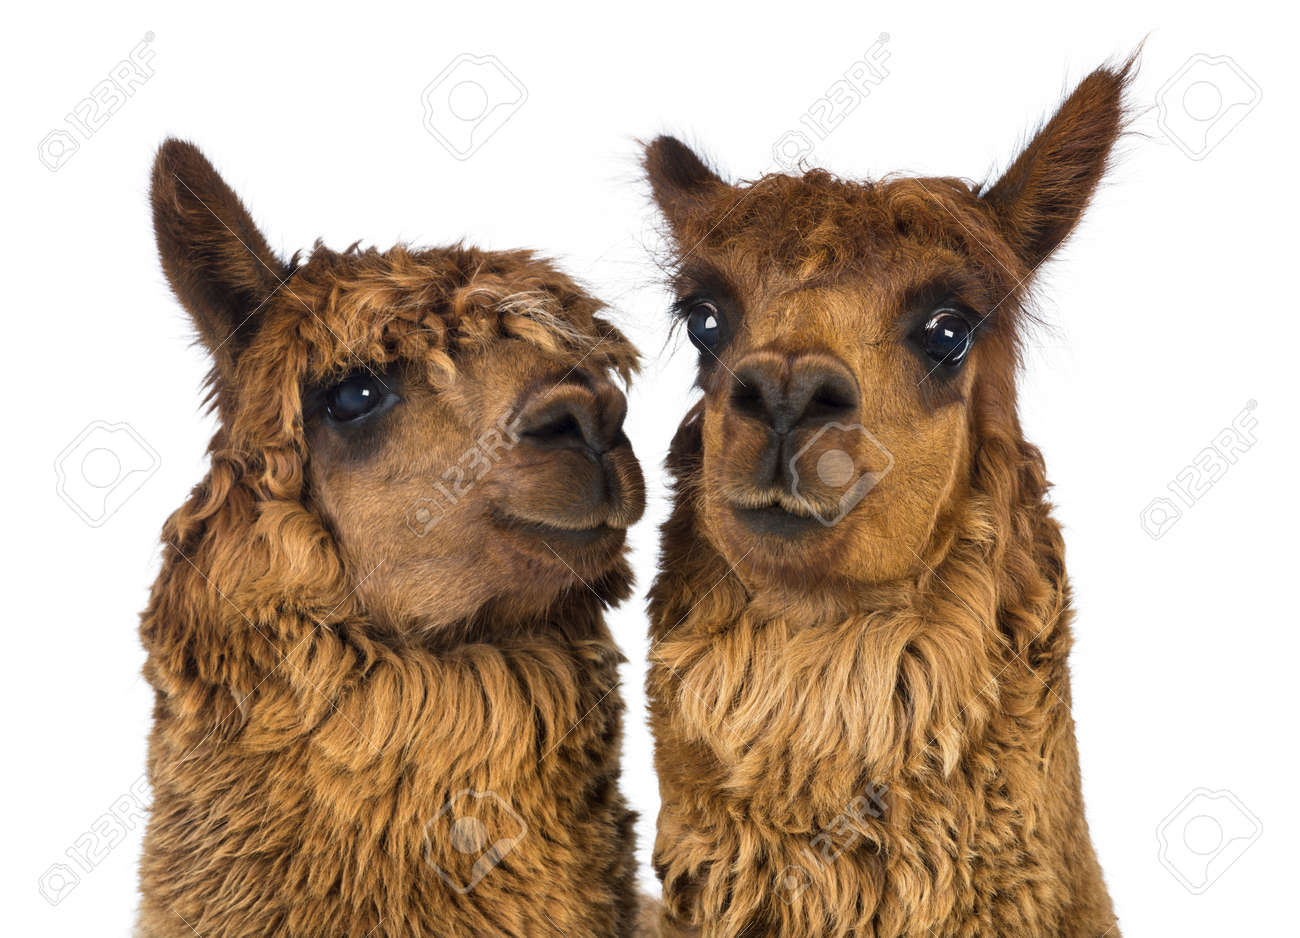 Close-up of two Alpacas, one is looking away and one is looking at camera against white background Stock Photo - 18179110